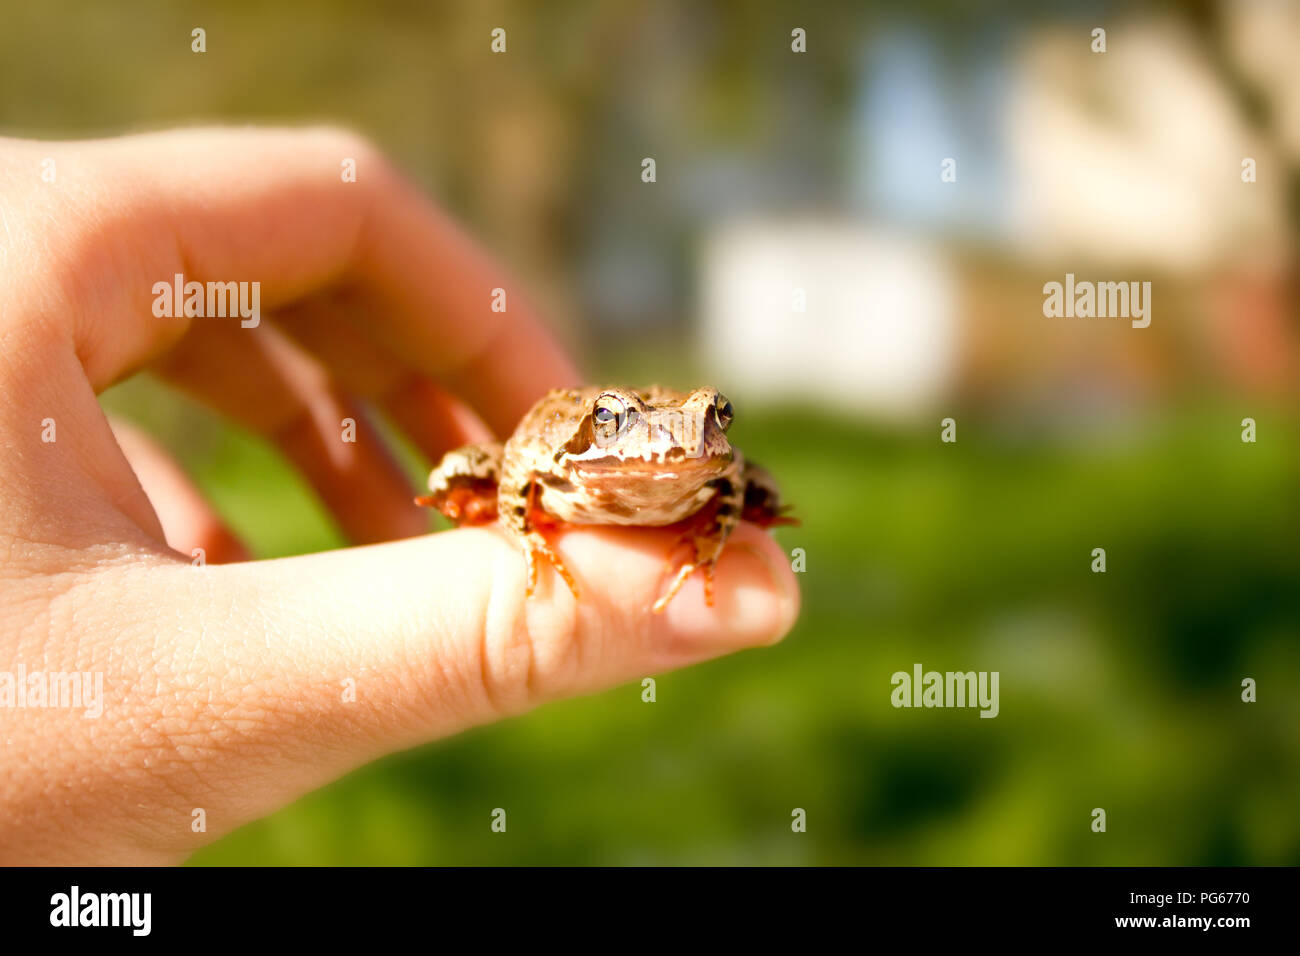 life in harmony with the wild nature - little frog in hand - Stock Image